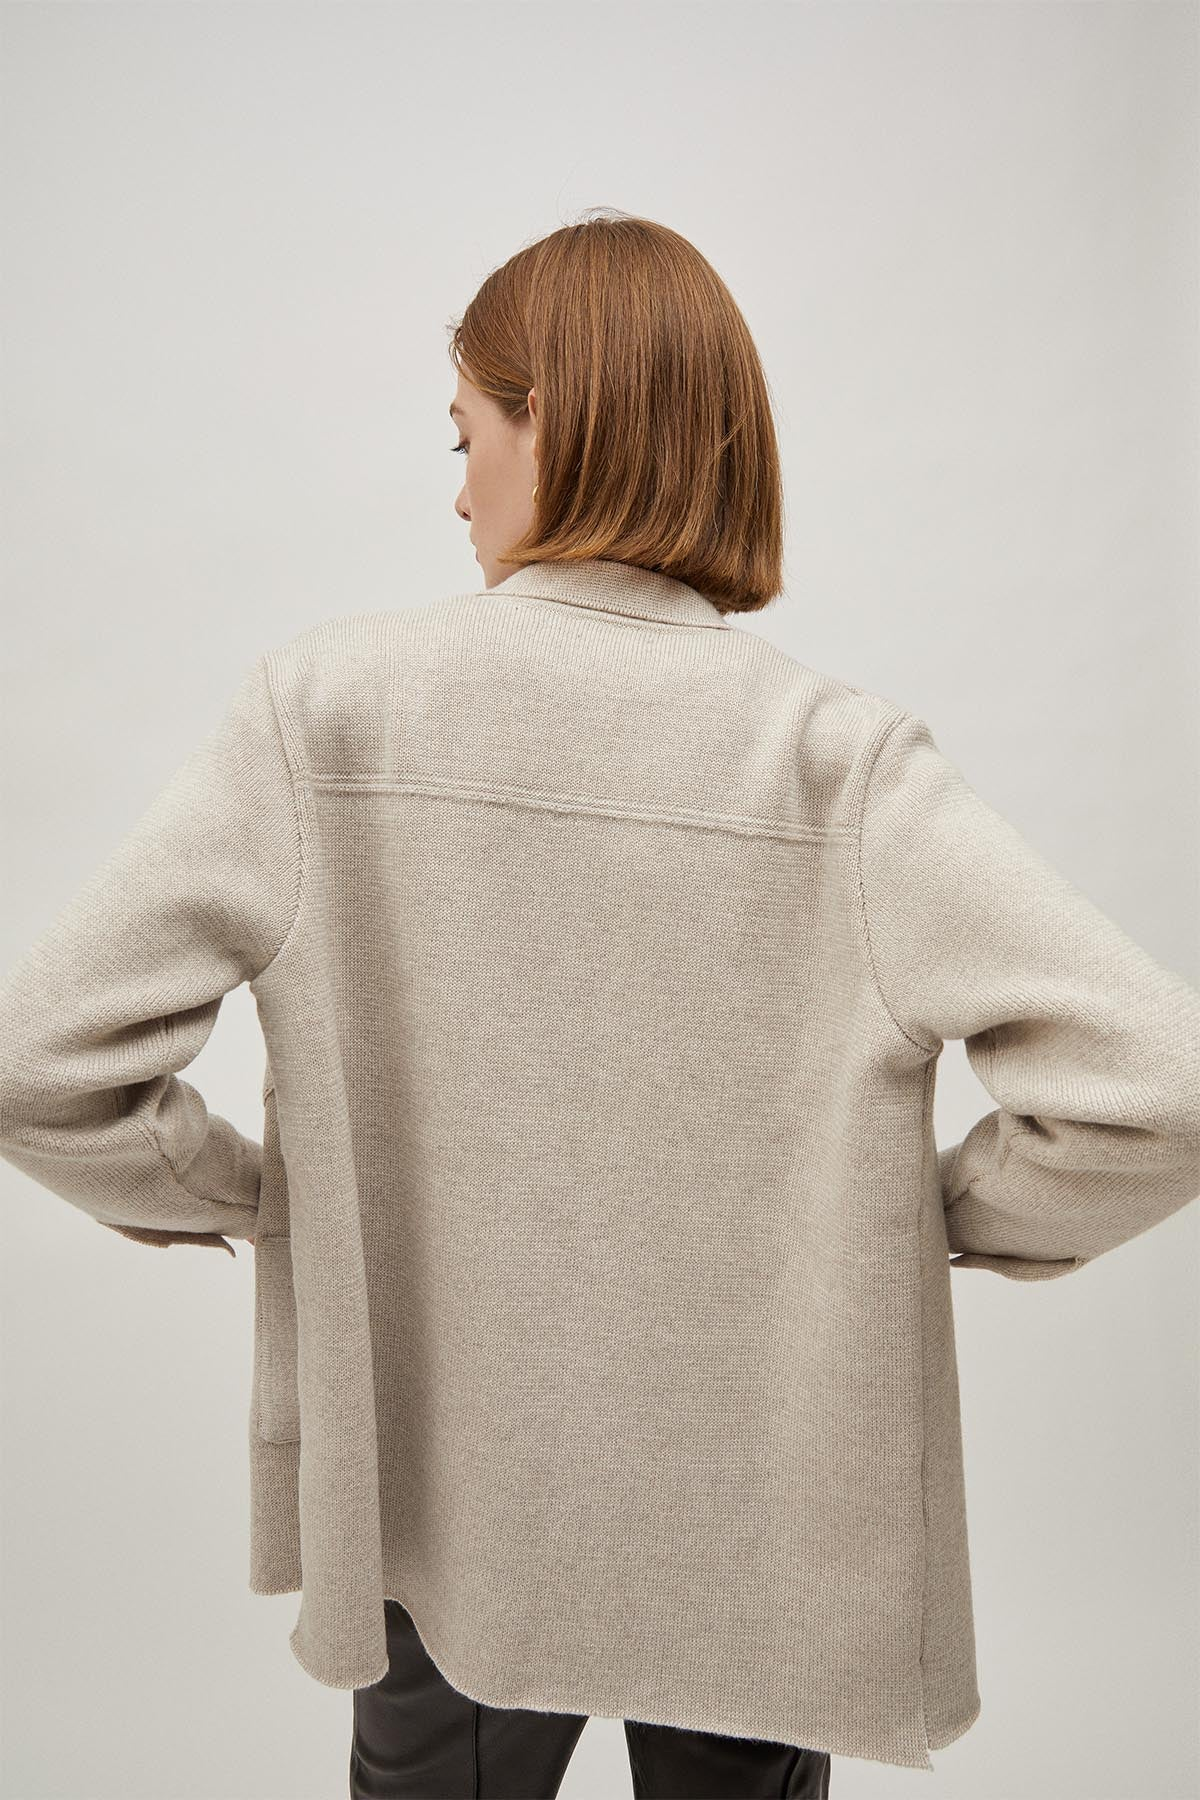 The Wool Overshirt - Pearl